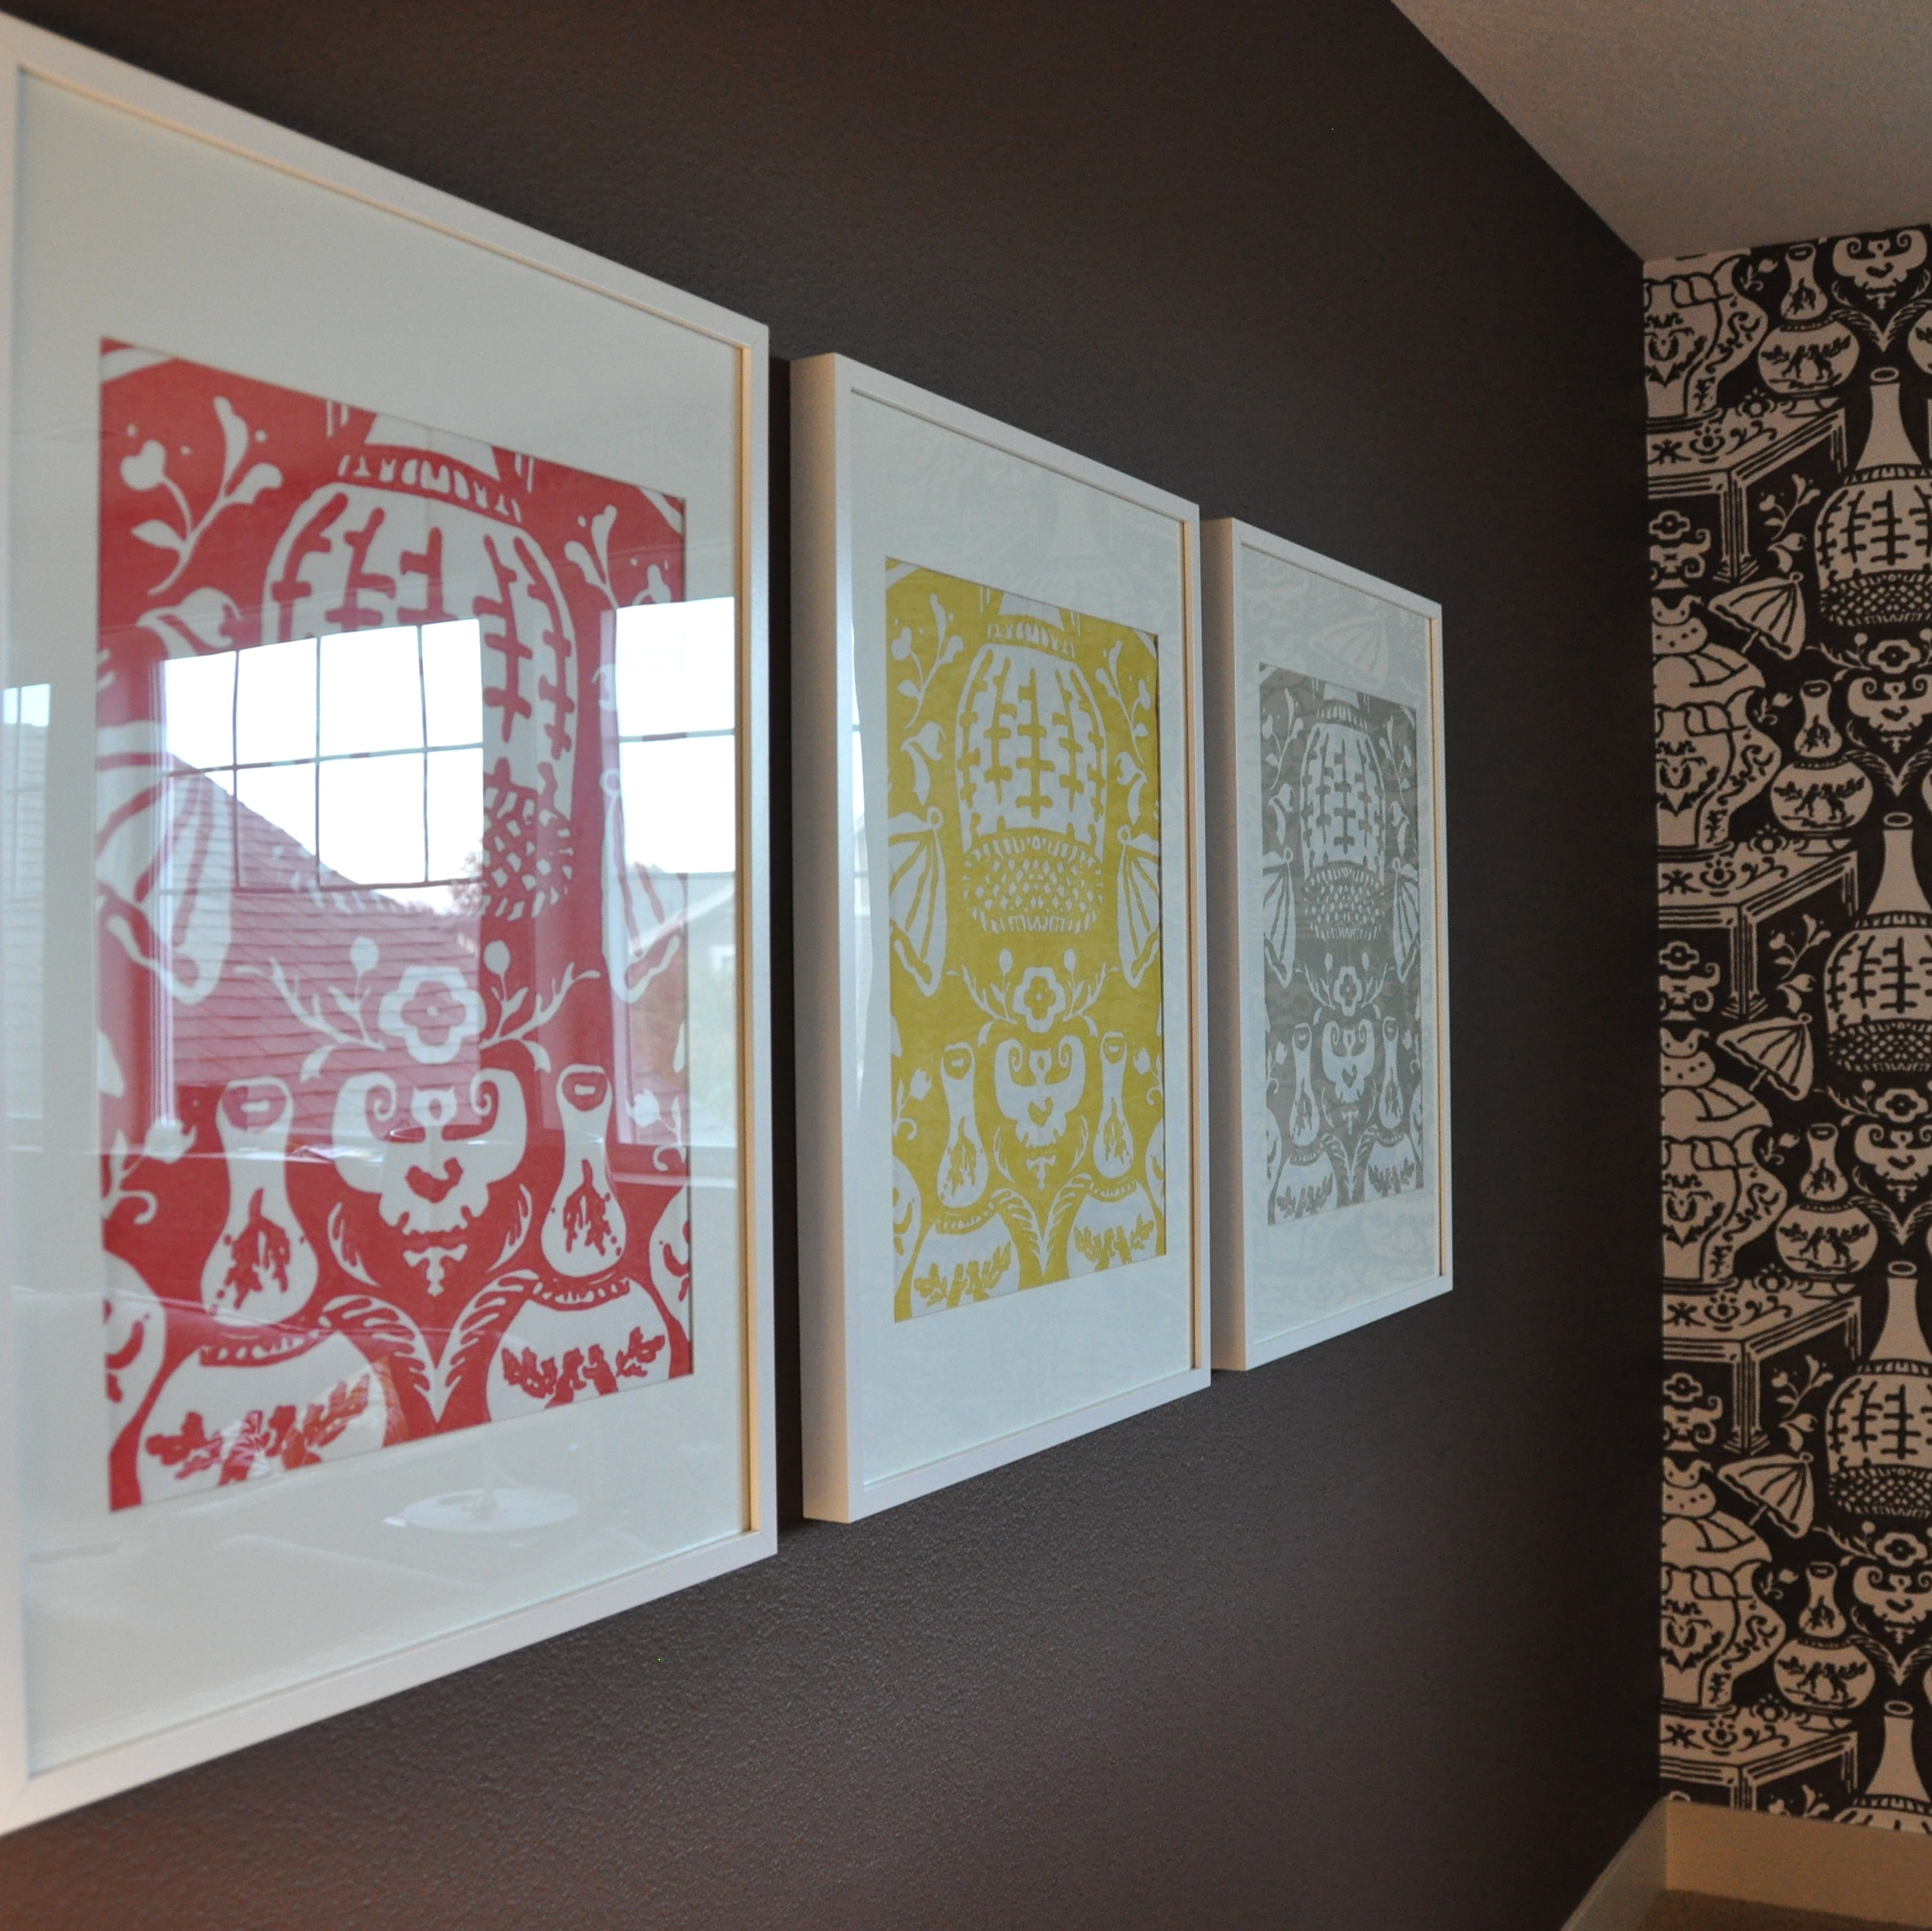 Wallpaper Samples In Ikea Ribba Frames = Simple & Fun Art! | Great Regarding Most Recent Ikea Fabric Wall Art (View 13 of 15)